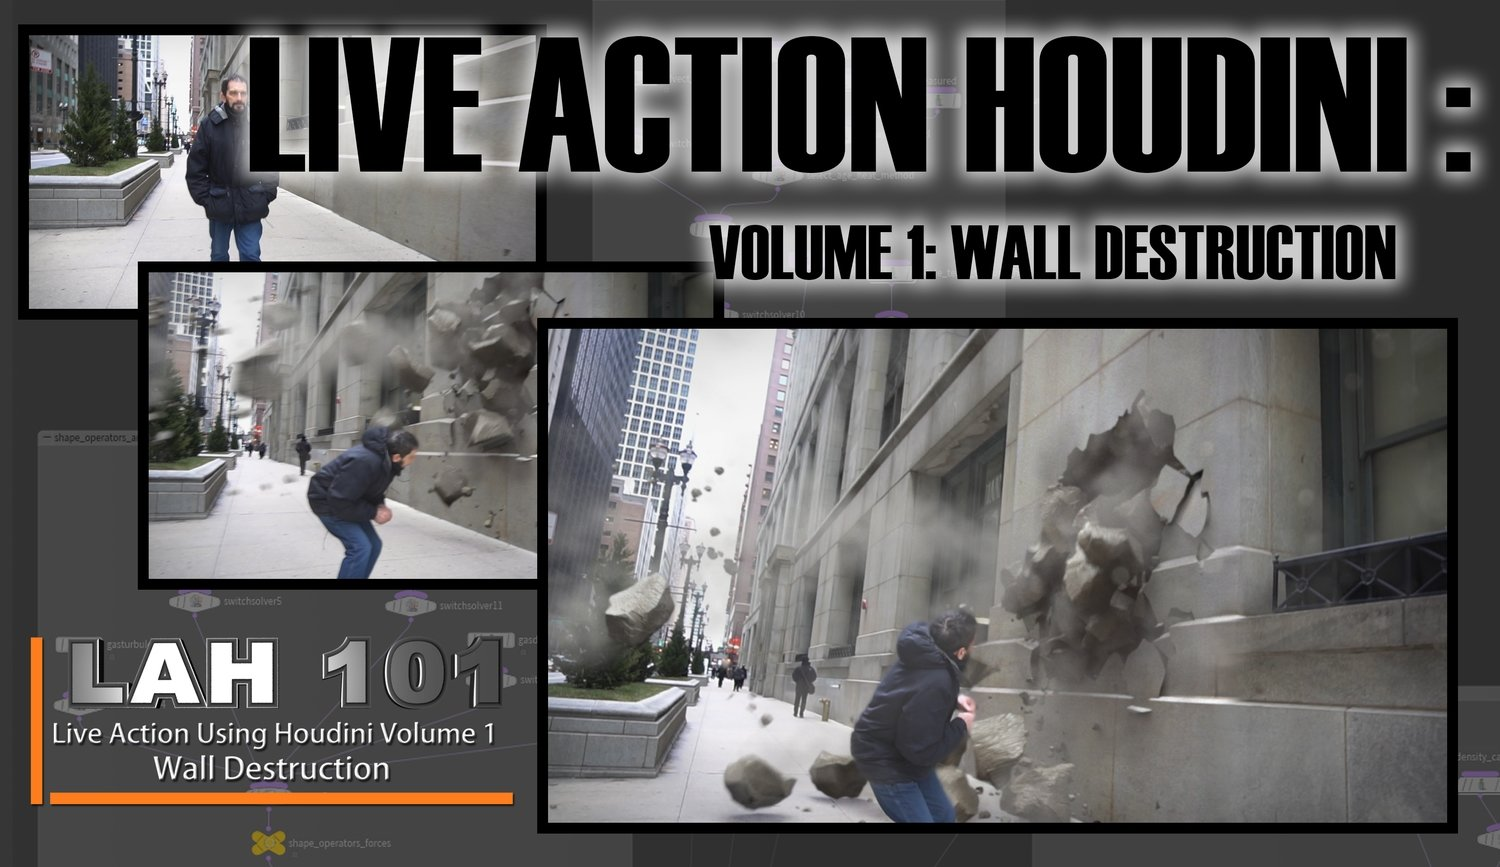 LAH 101- Live Action Houdini Volume 1